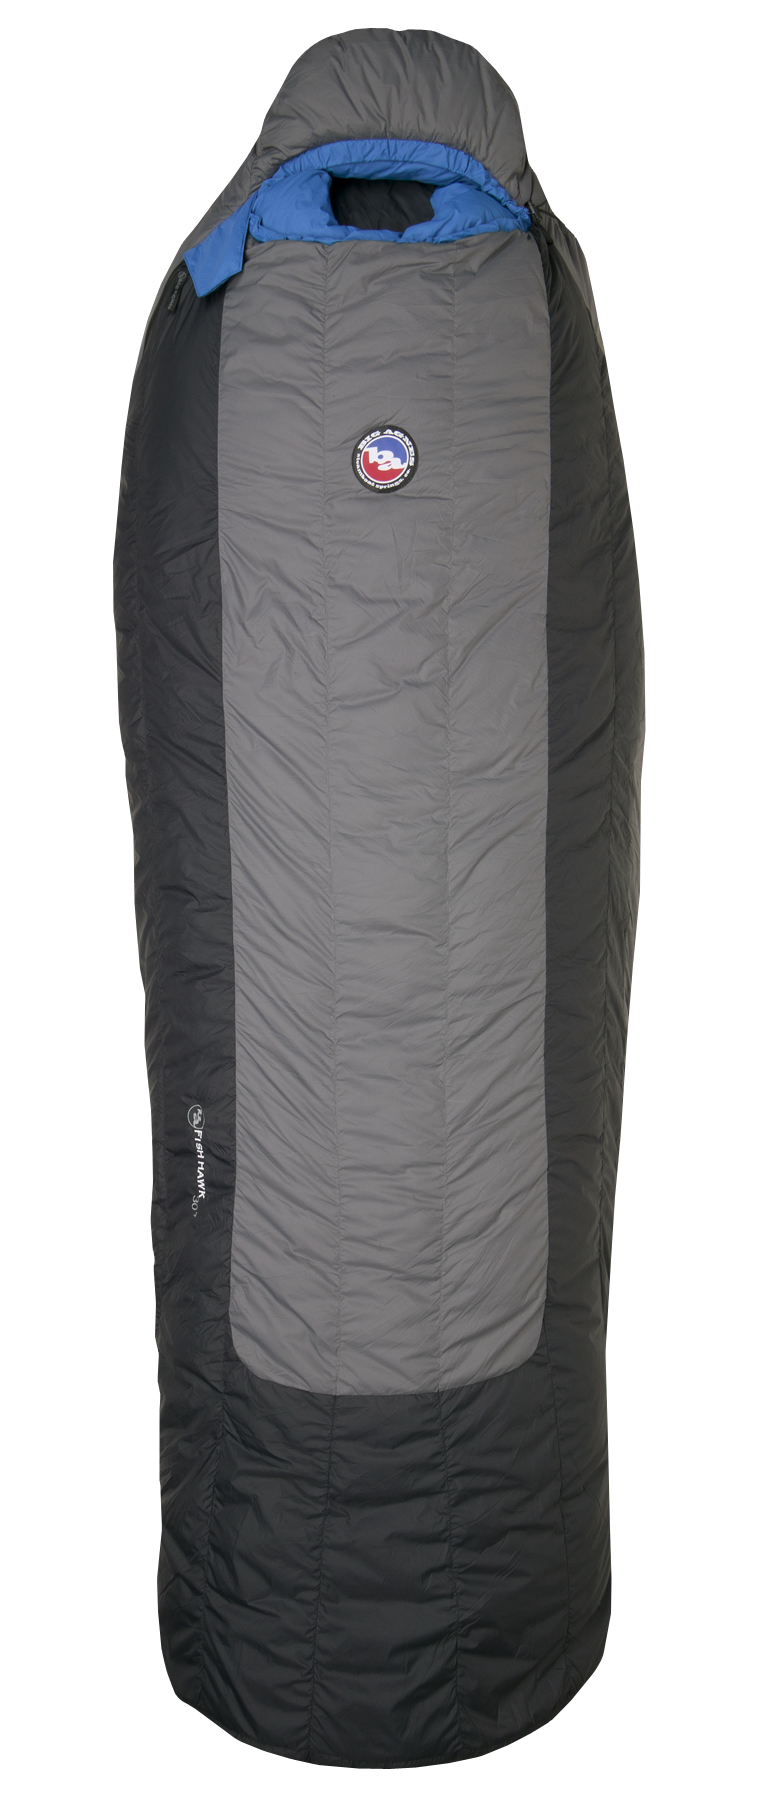 "Camp and Hike Key Features of the Big Agnes Fish Hawk 30 Regular Left Sleeping Bag: Rated to 30 degrees Integrated full pad sleeve. Never roll off your pad again Rectangular shape offers more room in foot box and shoulders Cotton storage sack & nylon stuff sack included Built in pillow pocket holds a fleece or Big Agnes pillow Interior fabric loops for sleeping bag liners 70"" YKK #8 zipper. Mate together our left and right zip bags with same size zipper No-draft collar seals around neck to keep cold air from sneaking in No-draft wedge insulates the connection between the bag and pad No-draft zipper tube insulates along the length of the zipper Shell fabric: Down proof, nylon microfiber rip-stop. WR surface treatment to repel water Lining: Soft, breathable down proof nylon with stain resistant finish Pad sleeve: Nylon rip-stop. WR surface treatment to repel water Cotton storage sack & nylon stuff sack included Flow Construction: Insotect Flow is a flow-optimized insulation system that delivers uniform heat distribution and natural body contouring through its revolutionary baffle design. Flow Construction eliminates lateral and vertical down shifting by using vertical chambers with Flow Gates to regulate fill positioning and density. Strategically placed Flow Gates minimize vertical down shifting while vertical chambers minimize lateral shifting. With continuous vertical Flow chambers in place of traditional side seams, Flow bags eliminate potential cold spots which can occur with side seams. Vertical baffles now flow with your body for more rapid and uniform body heat distribution. LEFT OR RIGHT ZIPPER? When you are in the bag, on your back, the right zip will be on your right side, left zip on your left side Pad Size 20""x72"" Fill Type 650 fill goose down Fill Weight 11oz Bag Weight 2lb 10oz Shoulder Girth 70"" Hip Girth 66"" Foot Girth 54"" Stuff Sack Size M-8""x17.5"" Compressed Bag Size 8""x6"" - $138.95"